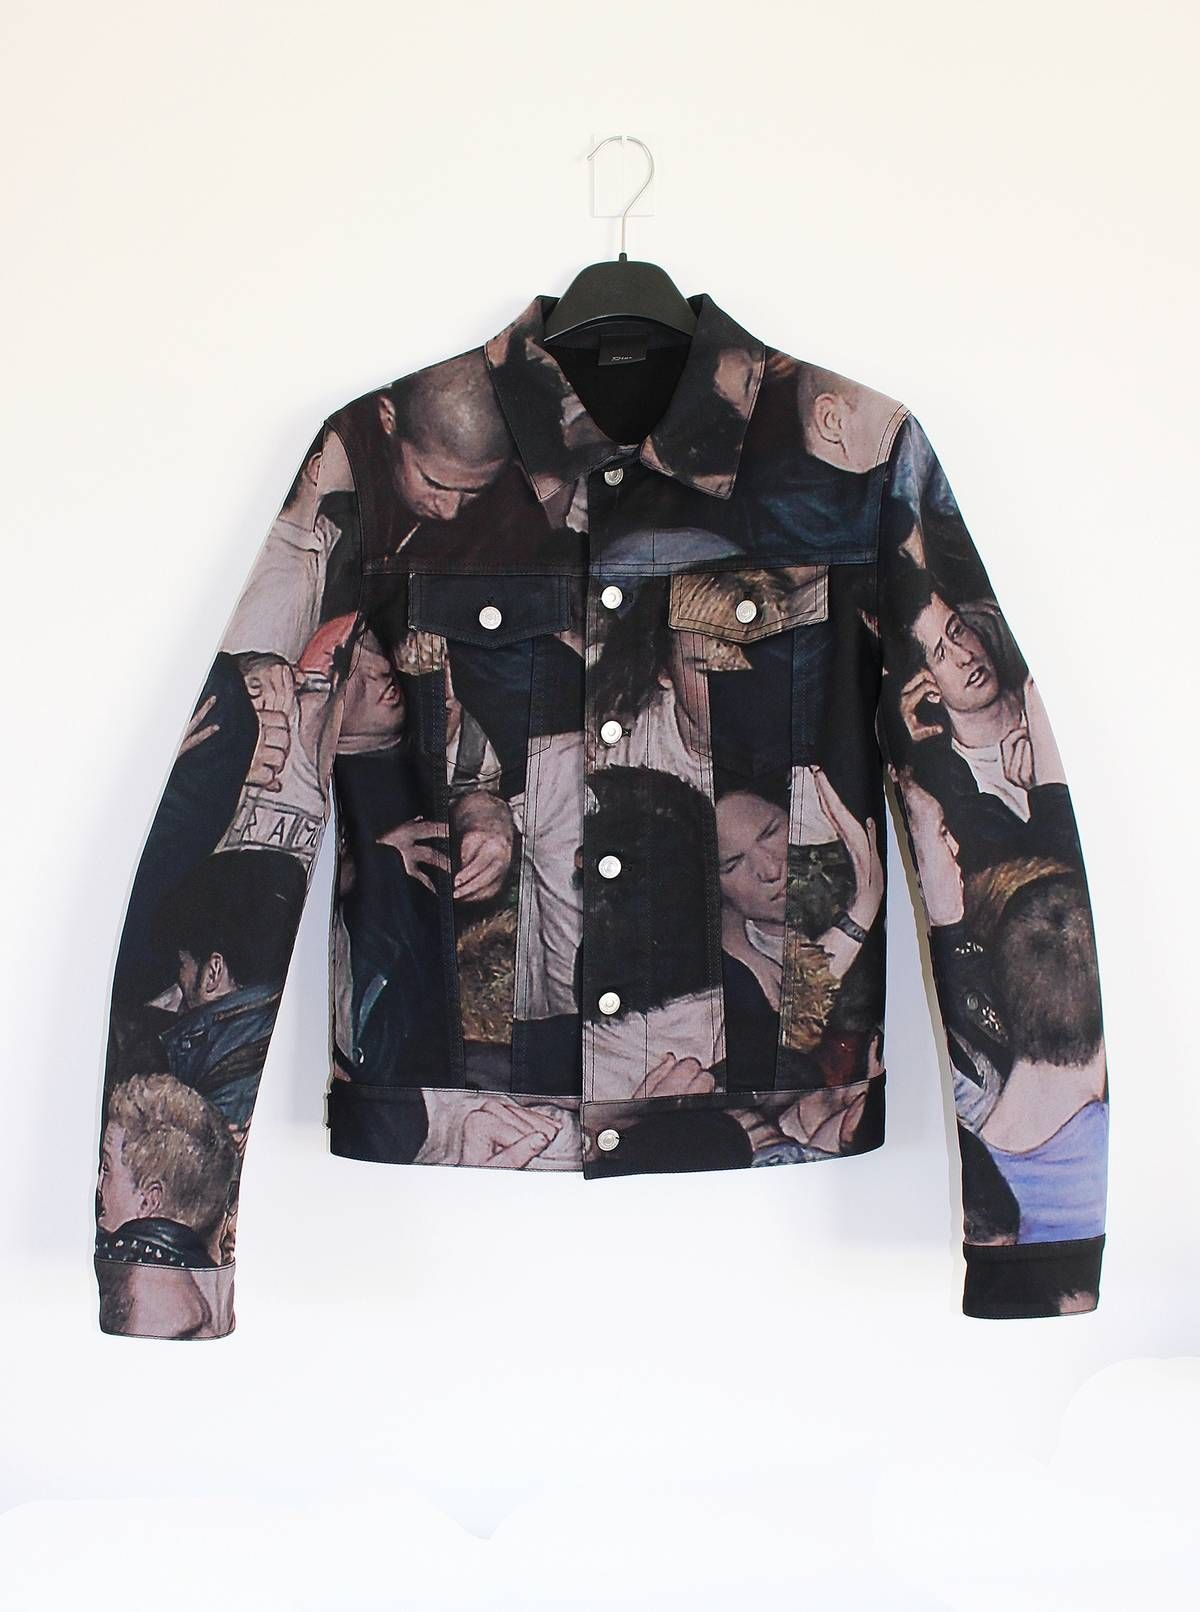 Buy Dior Bnwt Aw17 Dan Witz Jacket Size M Description Definitely A Collector S Item No Trades Reasonable Offers Only Am Structural Fashion Fashion Jackets [ 1612 x 1200 Pixel ]